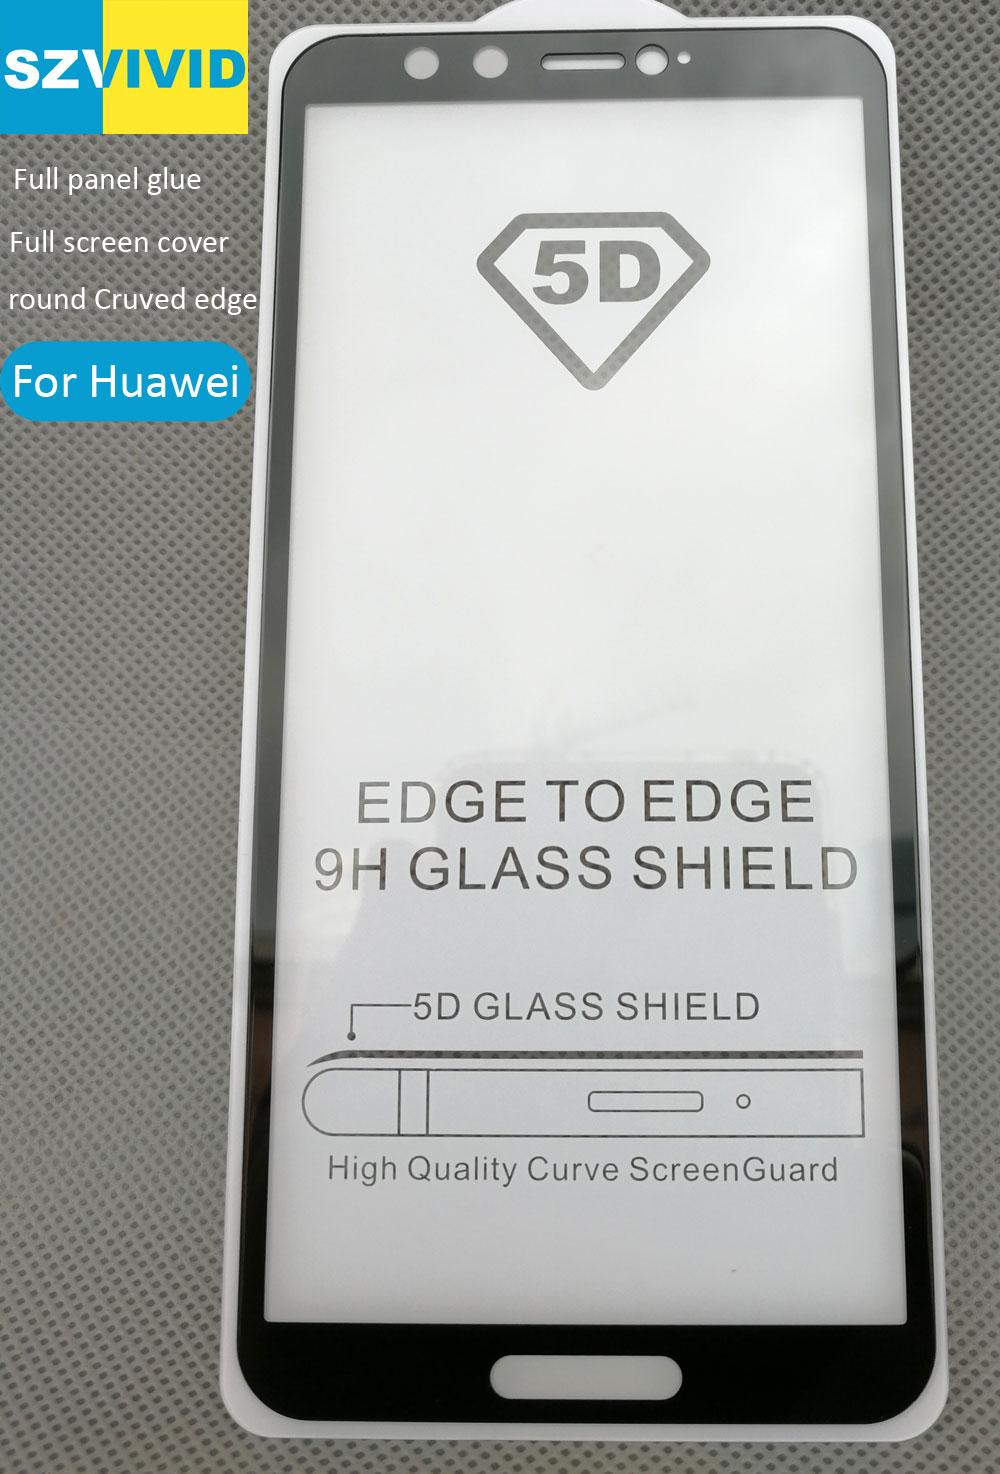 Full Screen Panel Glue Cover Tempered Glass For Huawei P Smart Honor 9 Lite 7C Pro 7A Pro 2.5D Curved oleophobic High quality